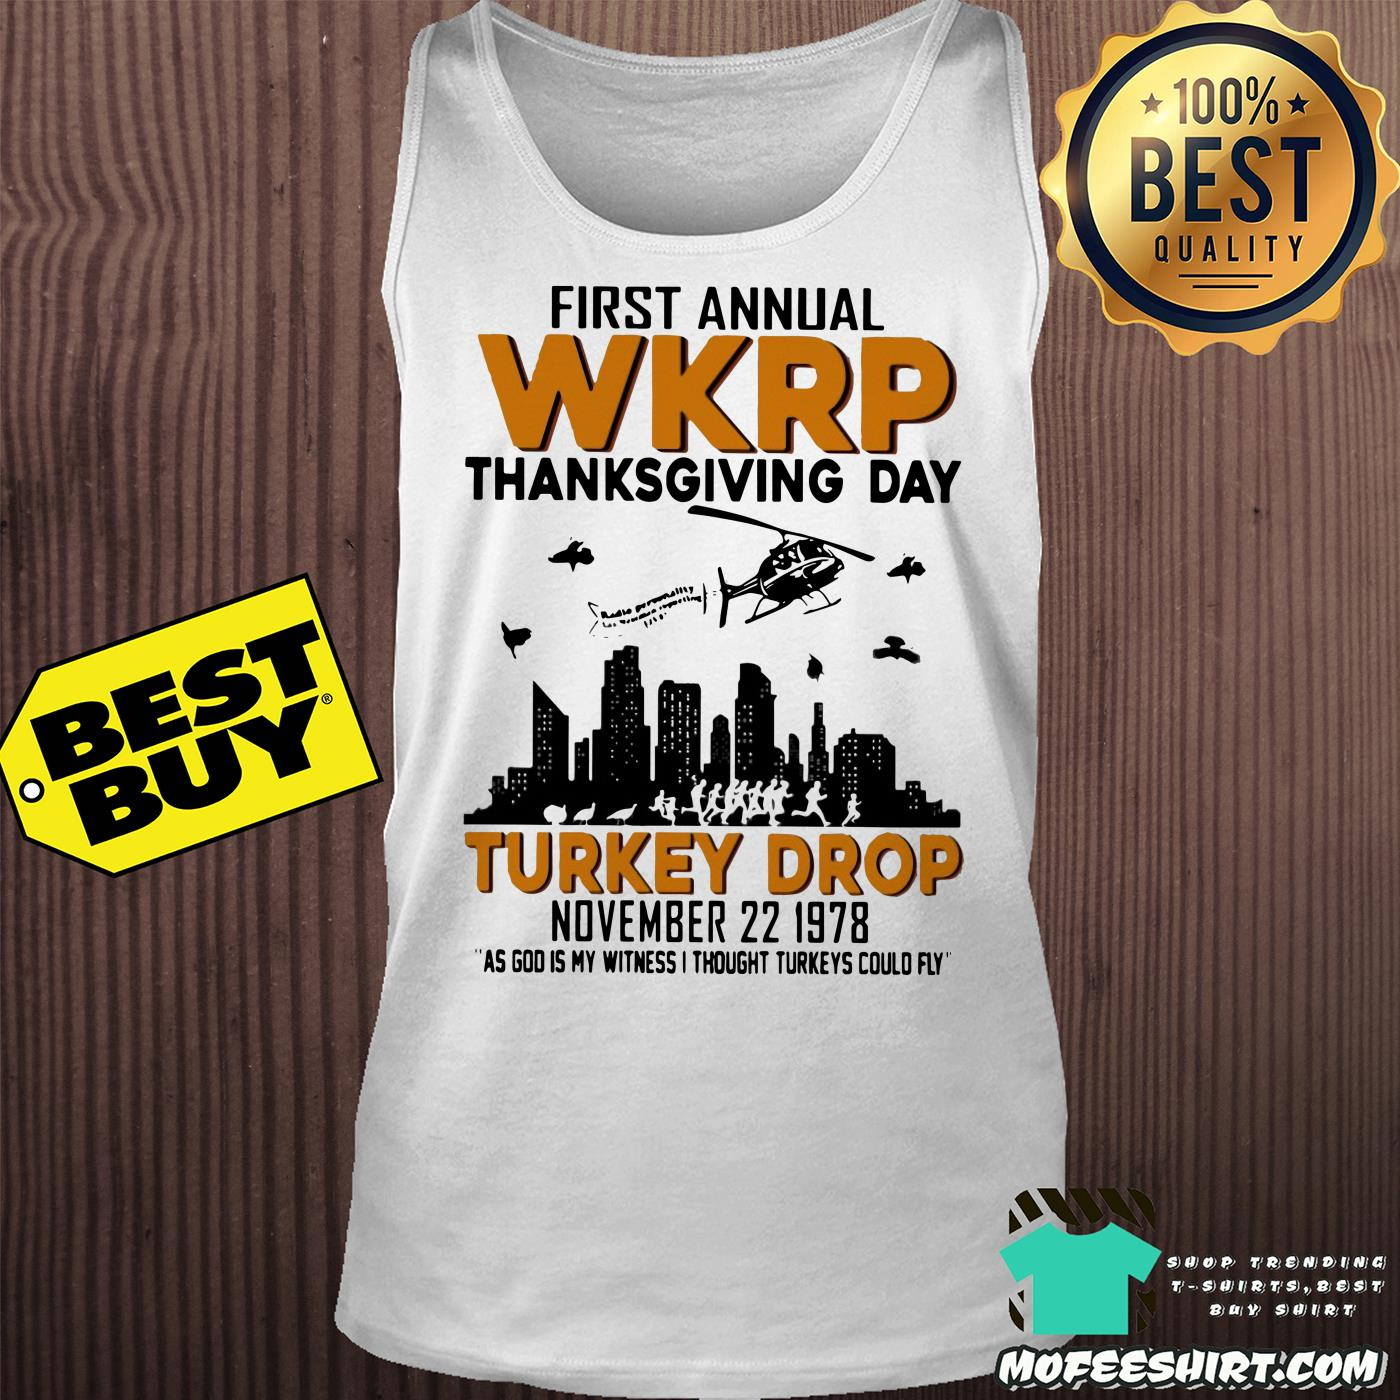 first annual wkrp thanksgiving day turkey drop november 22 1978 tank top - First Annual Wkrp Thanksgiving Day Turkey Drop November 22 1978 Shirt